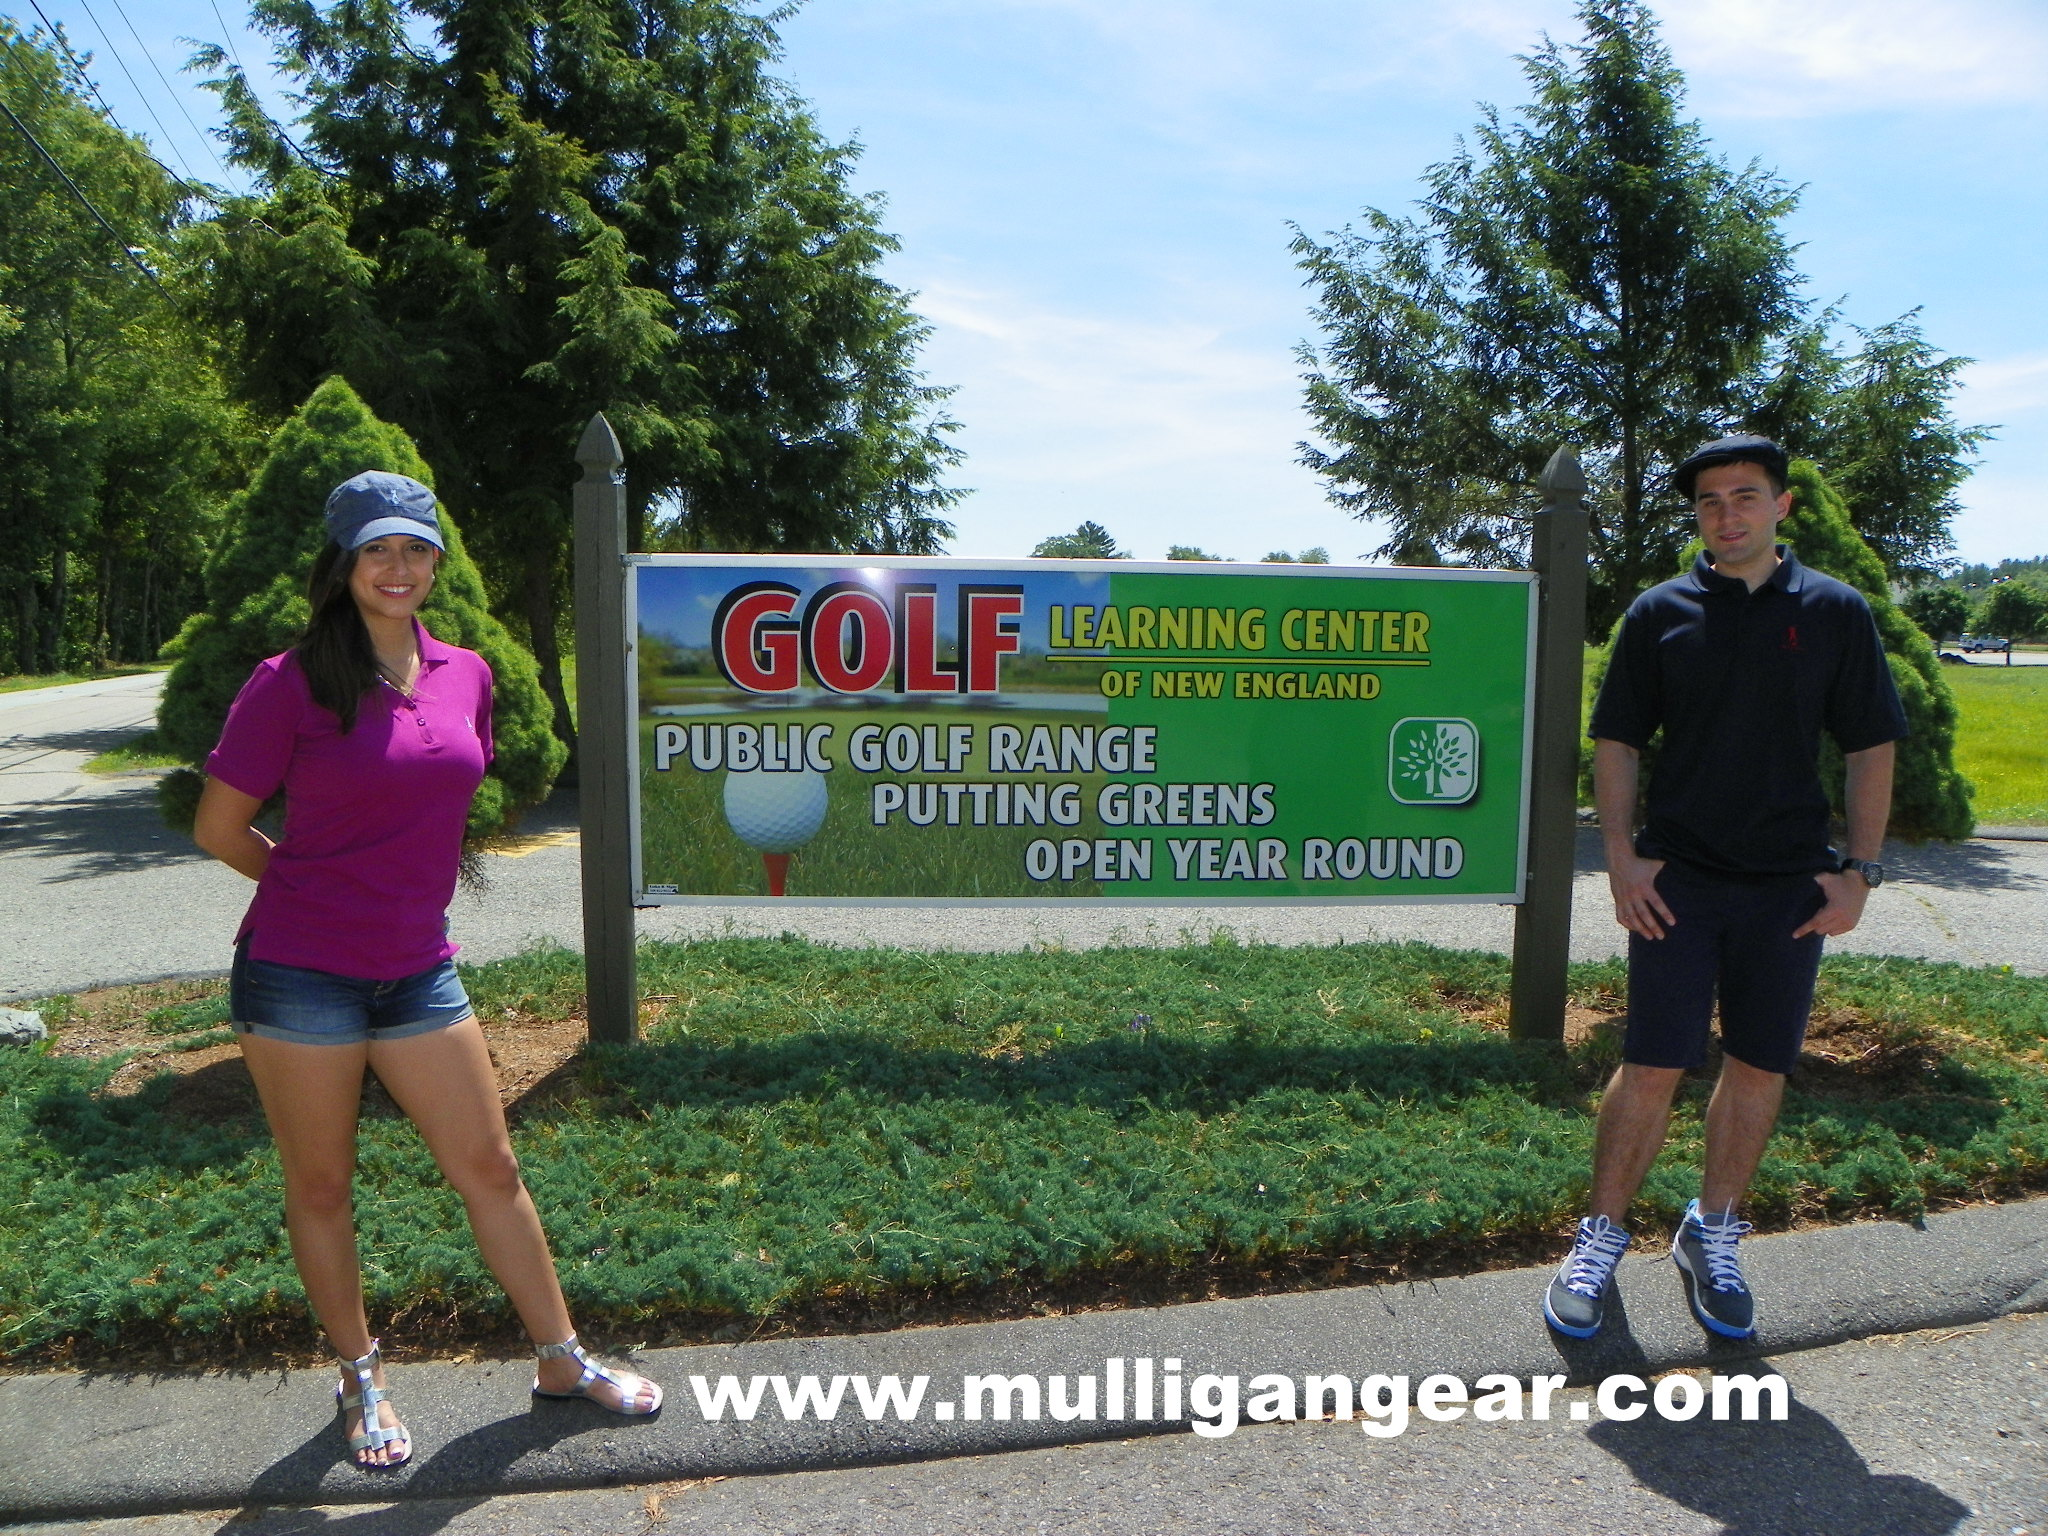 Mulligan Gear sets up a pop up shop at the Golf Learning Center in Norton, MA.